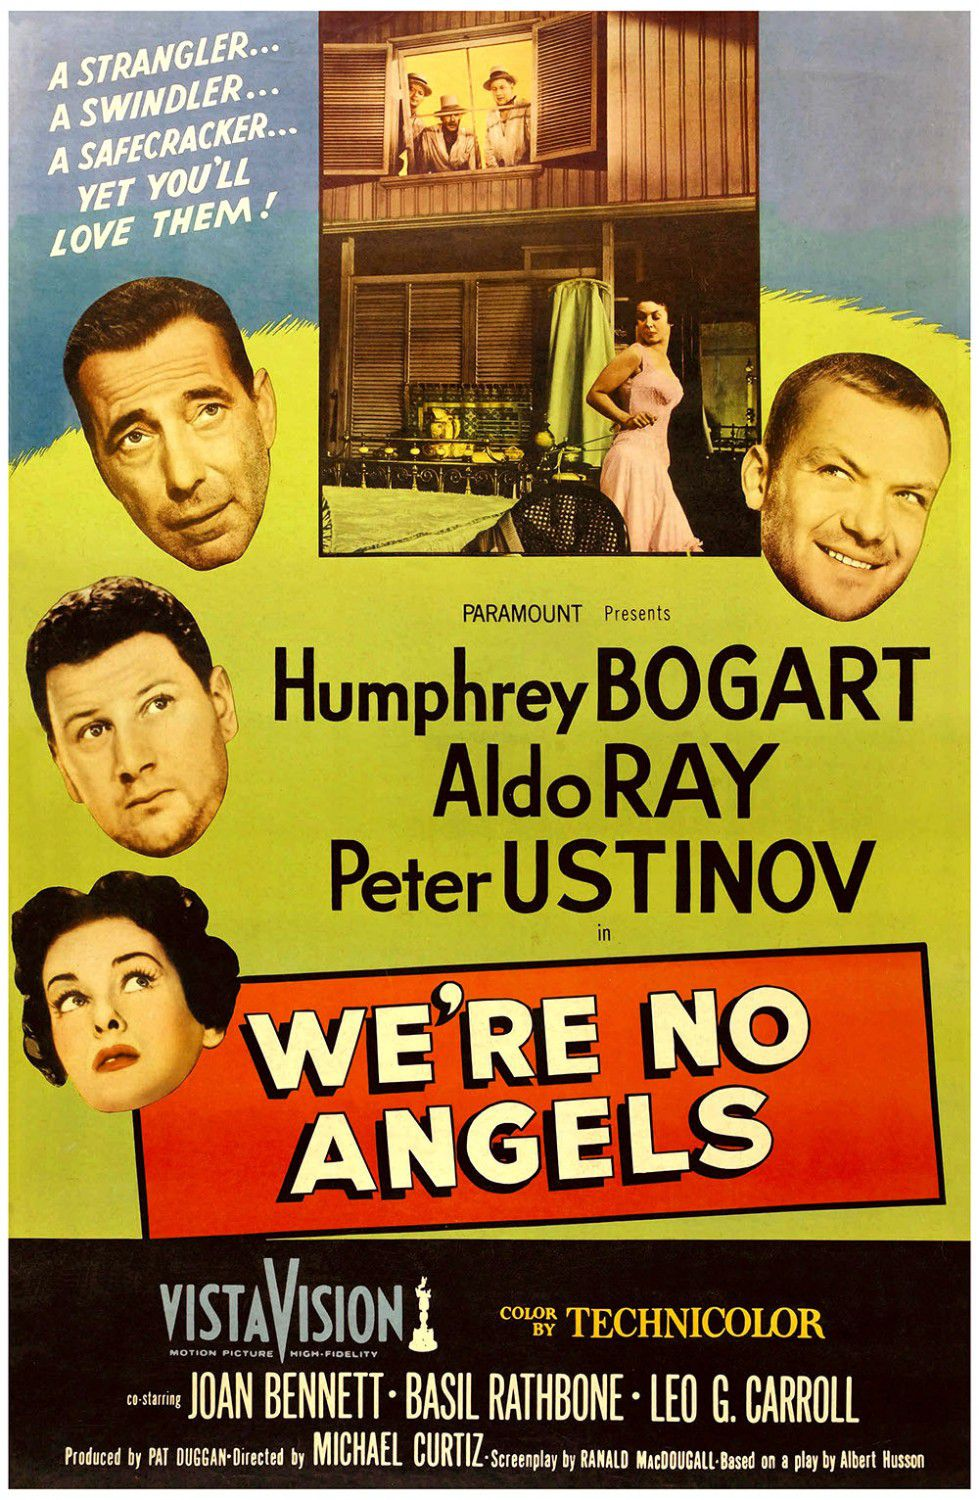 We're no Angels - Non siamo Angeli - 1955 - A Strangler, a Swindler, a Safecracker, yet you'll love them! - Humphrey Bogart - Aldo Ray - Peter Ustinov - Joan Bennett - Basil Rathbone - Leo G. Carroll - cult classic old film poster